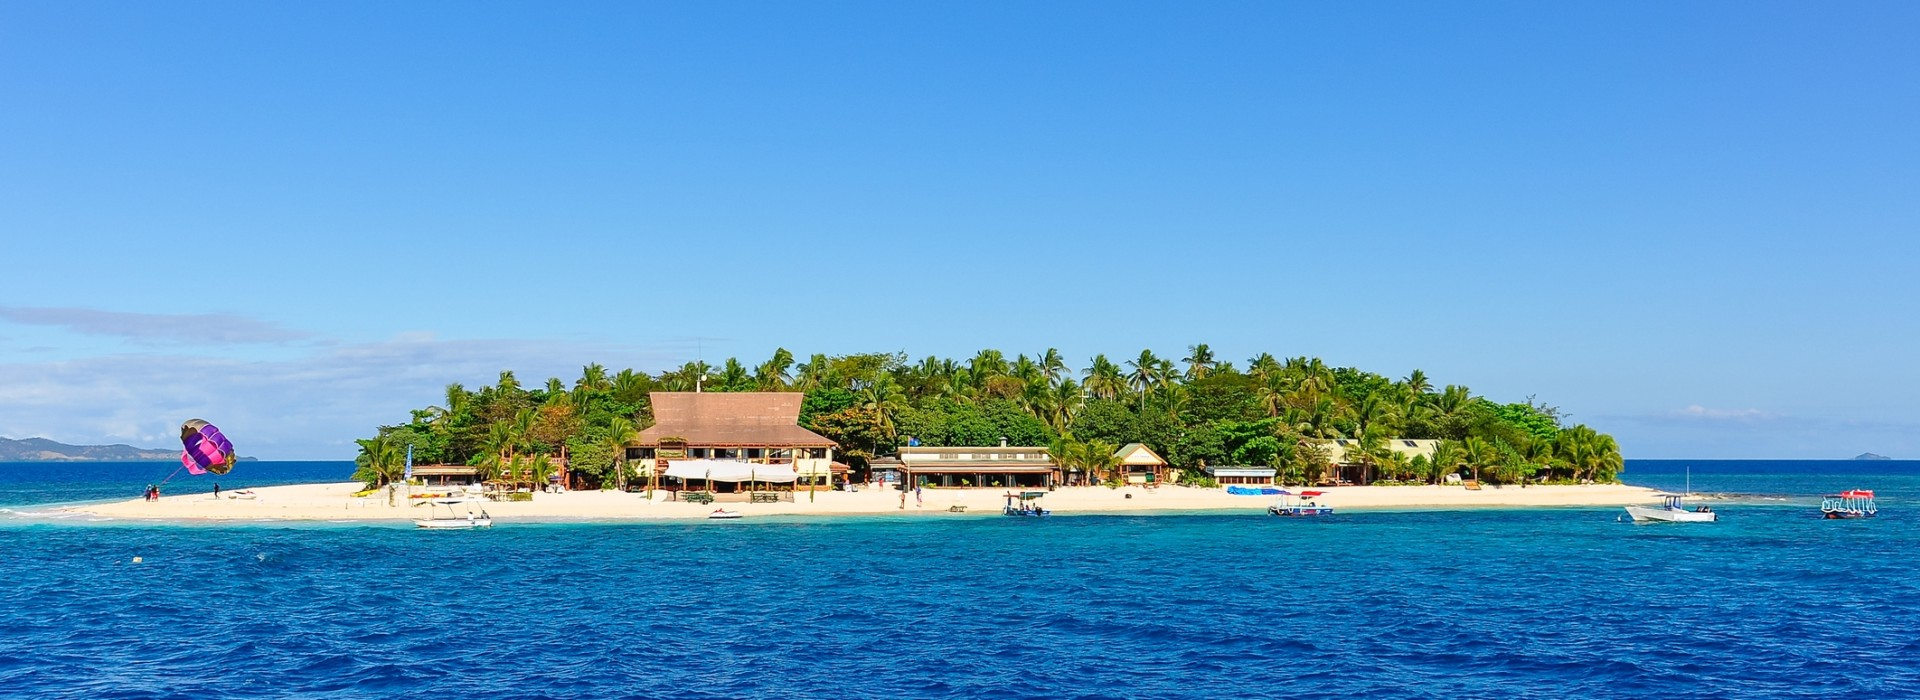 8 Best Fiji Tours Amp Trips 2019 2020 With 3 Reviews